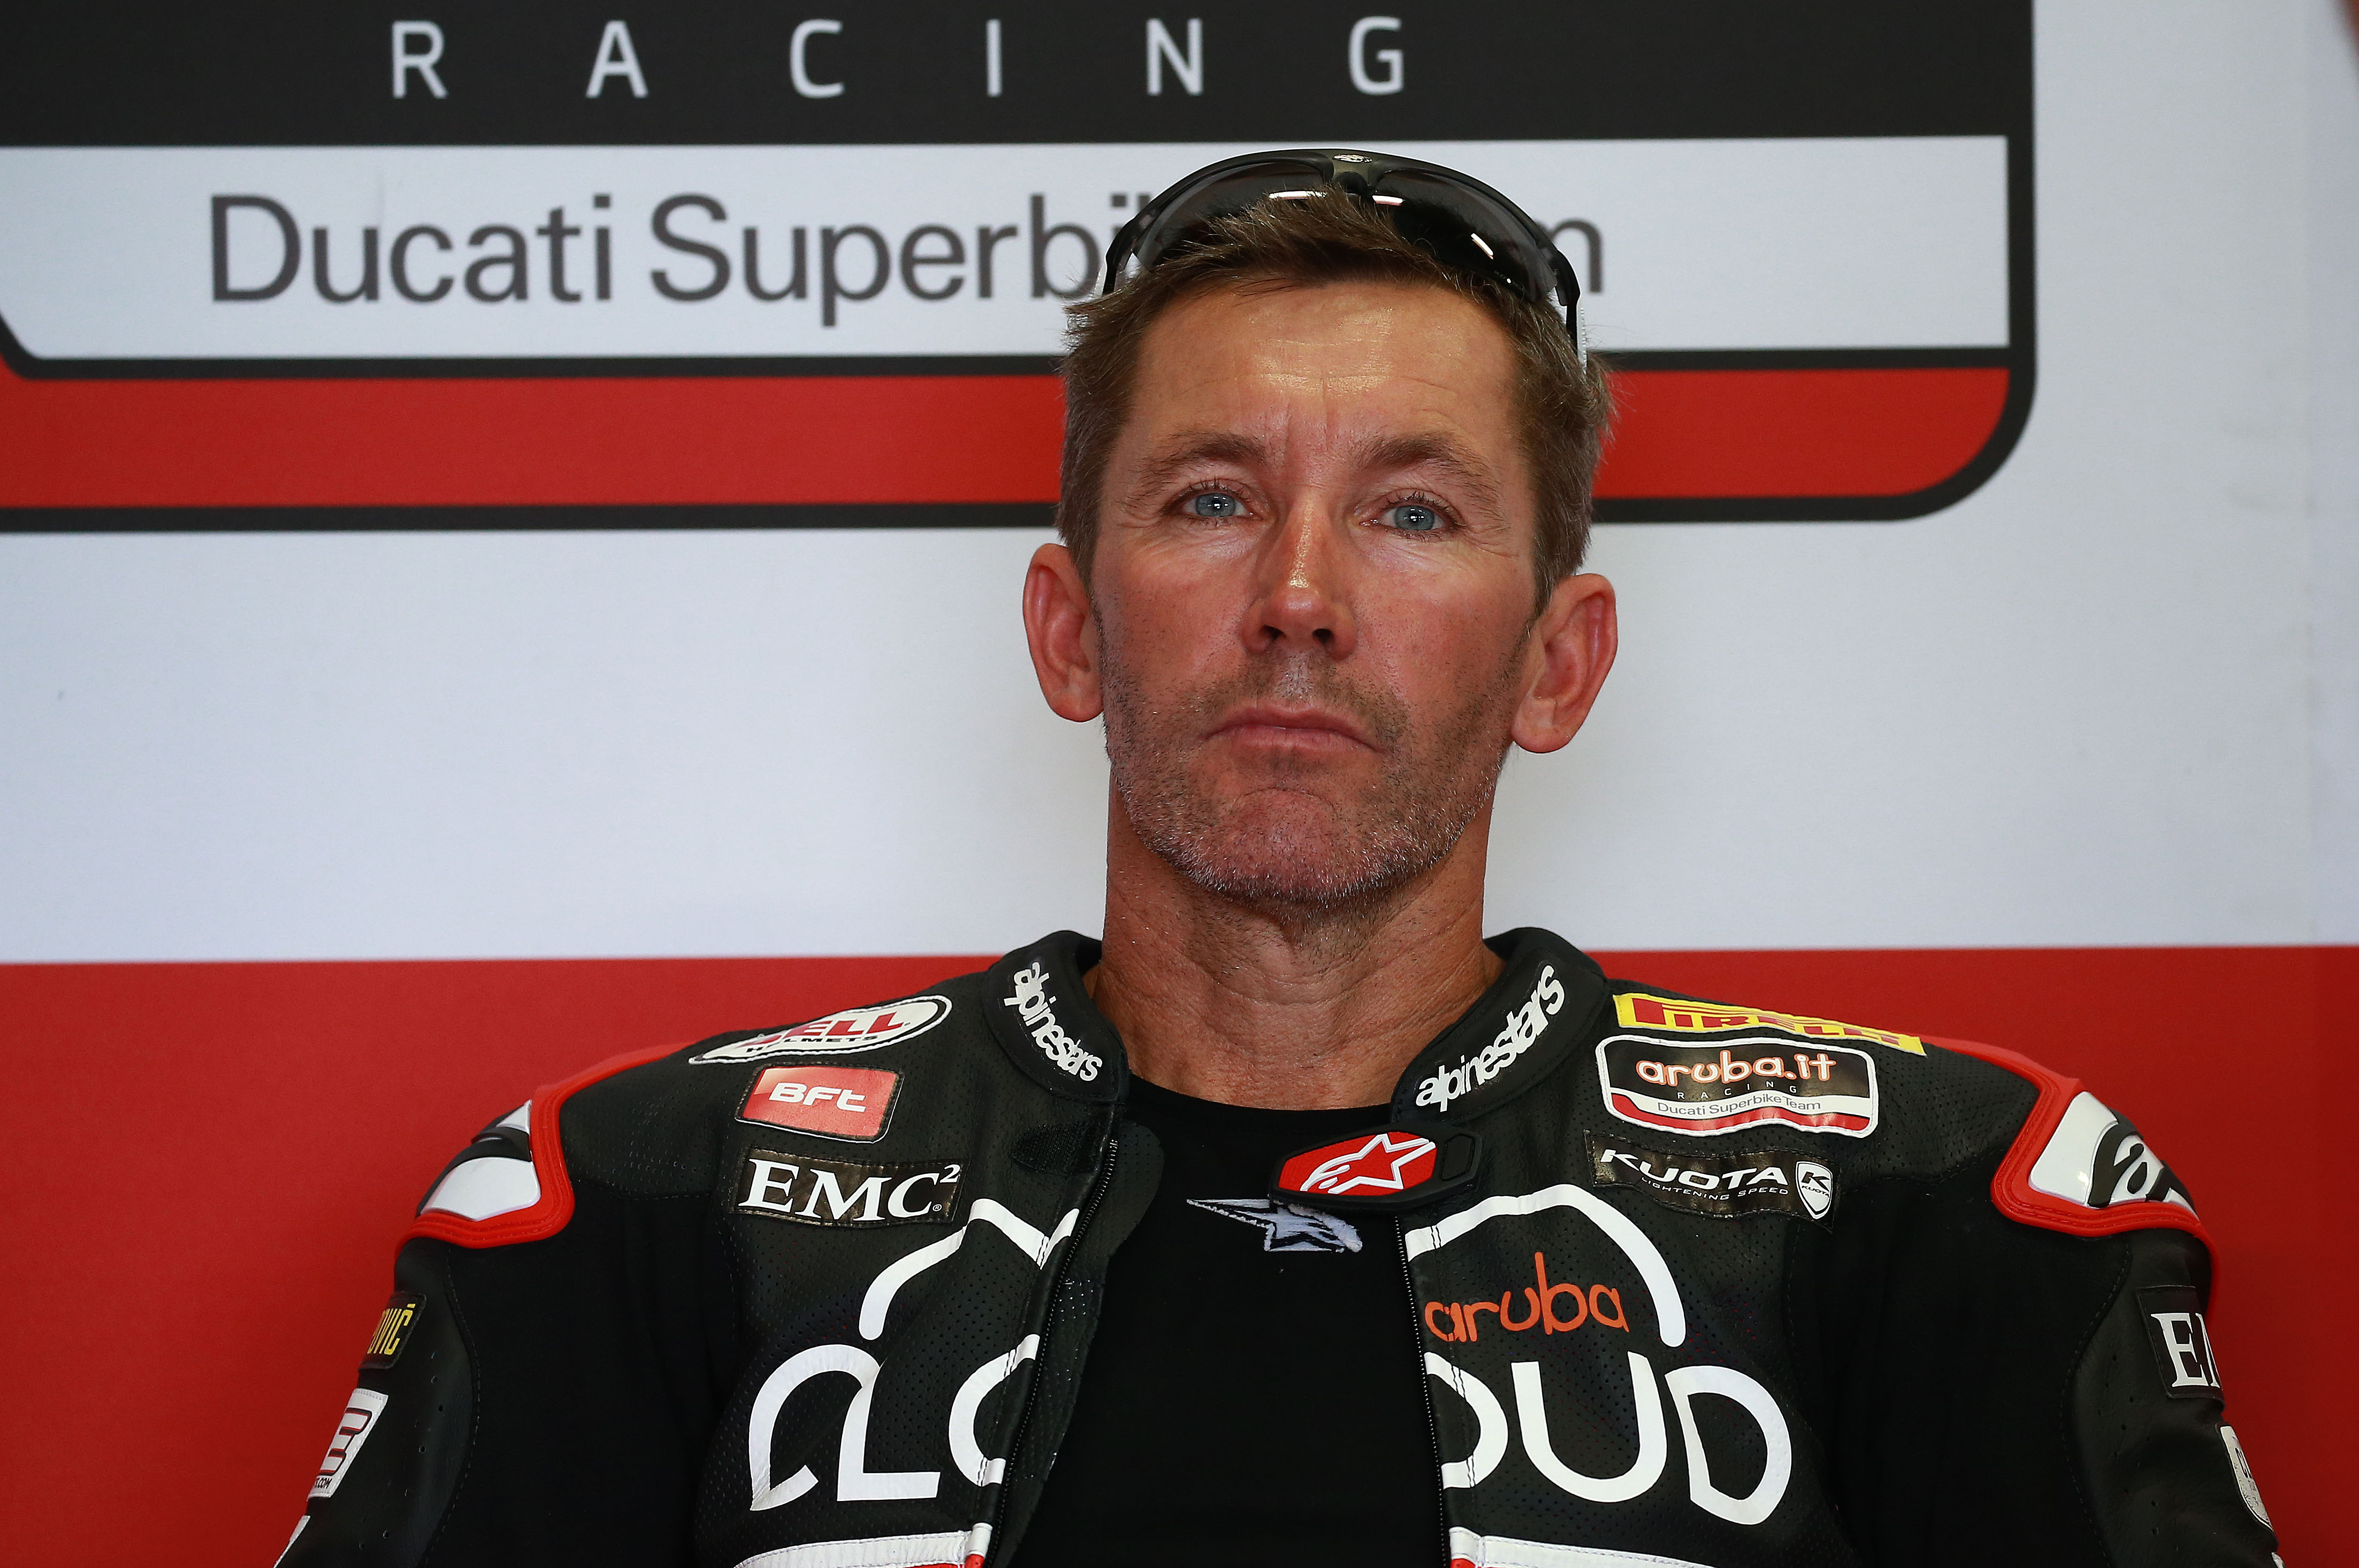 Bayliss, Dovizioso and Lorenzo to battle in Ducati Race of Champions